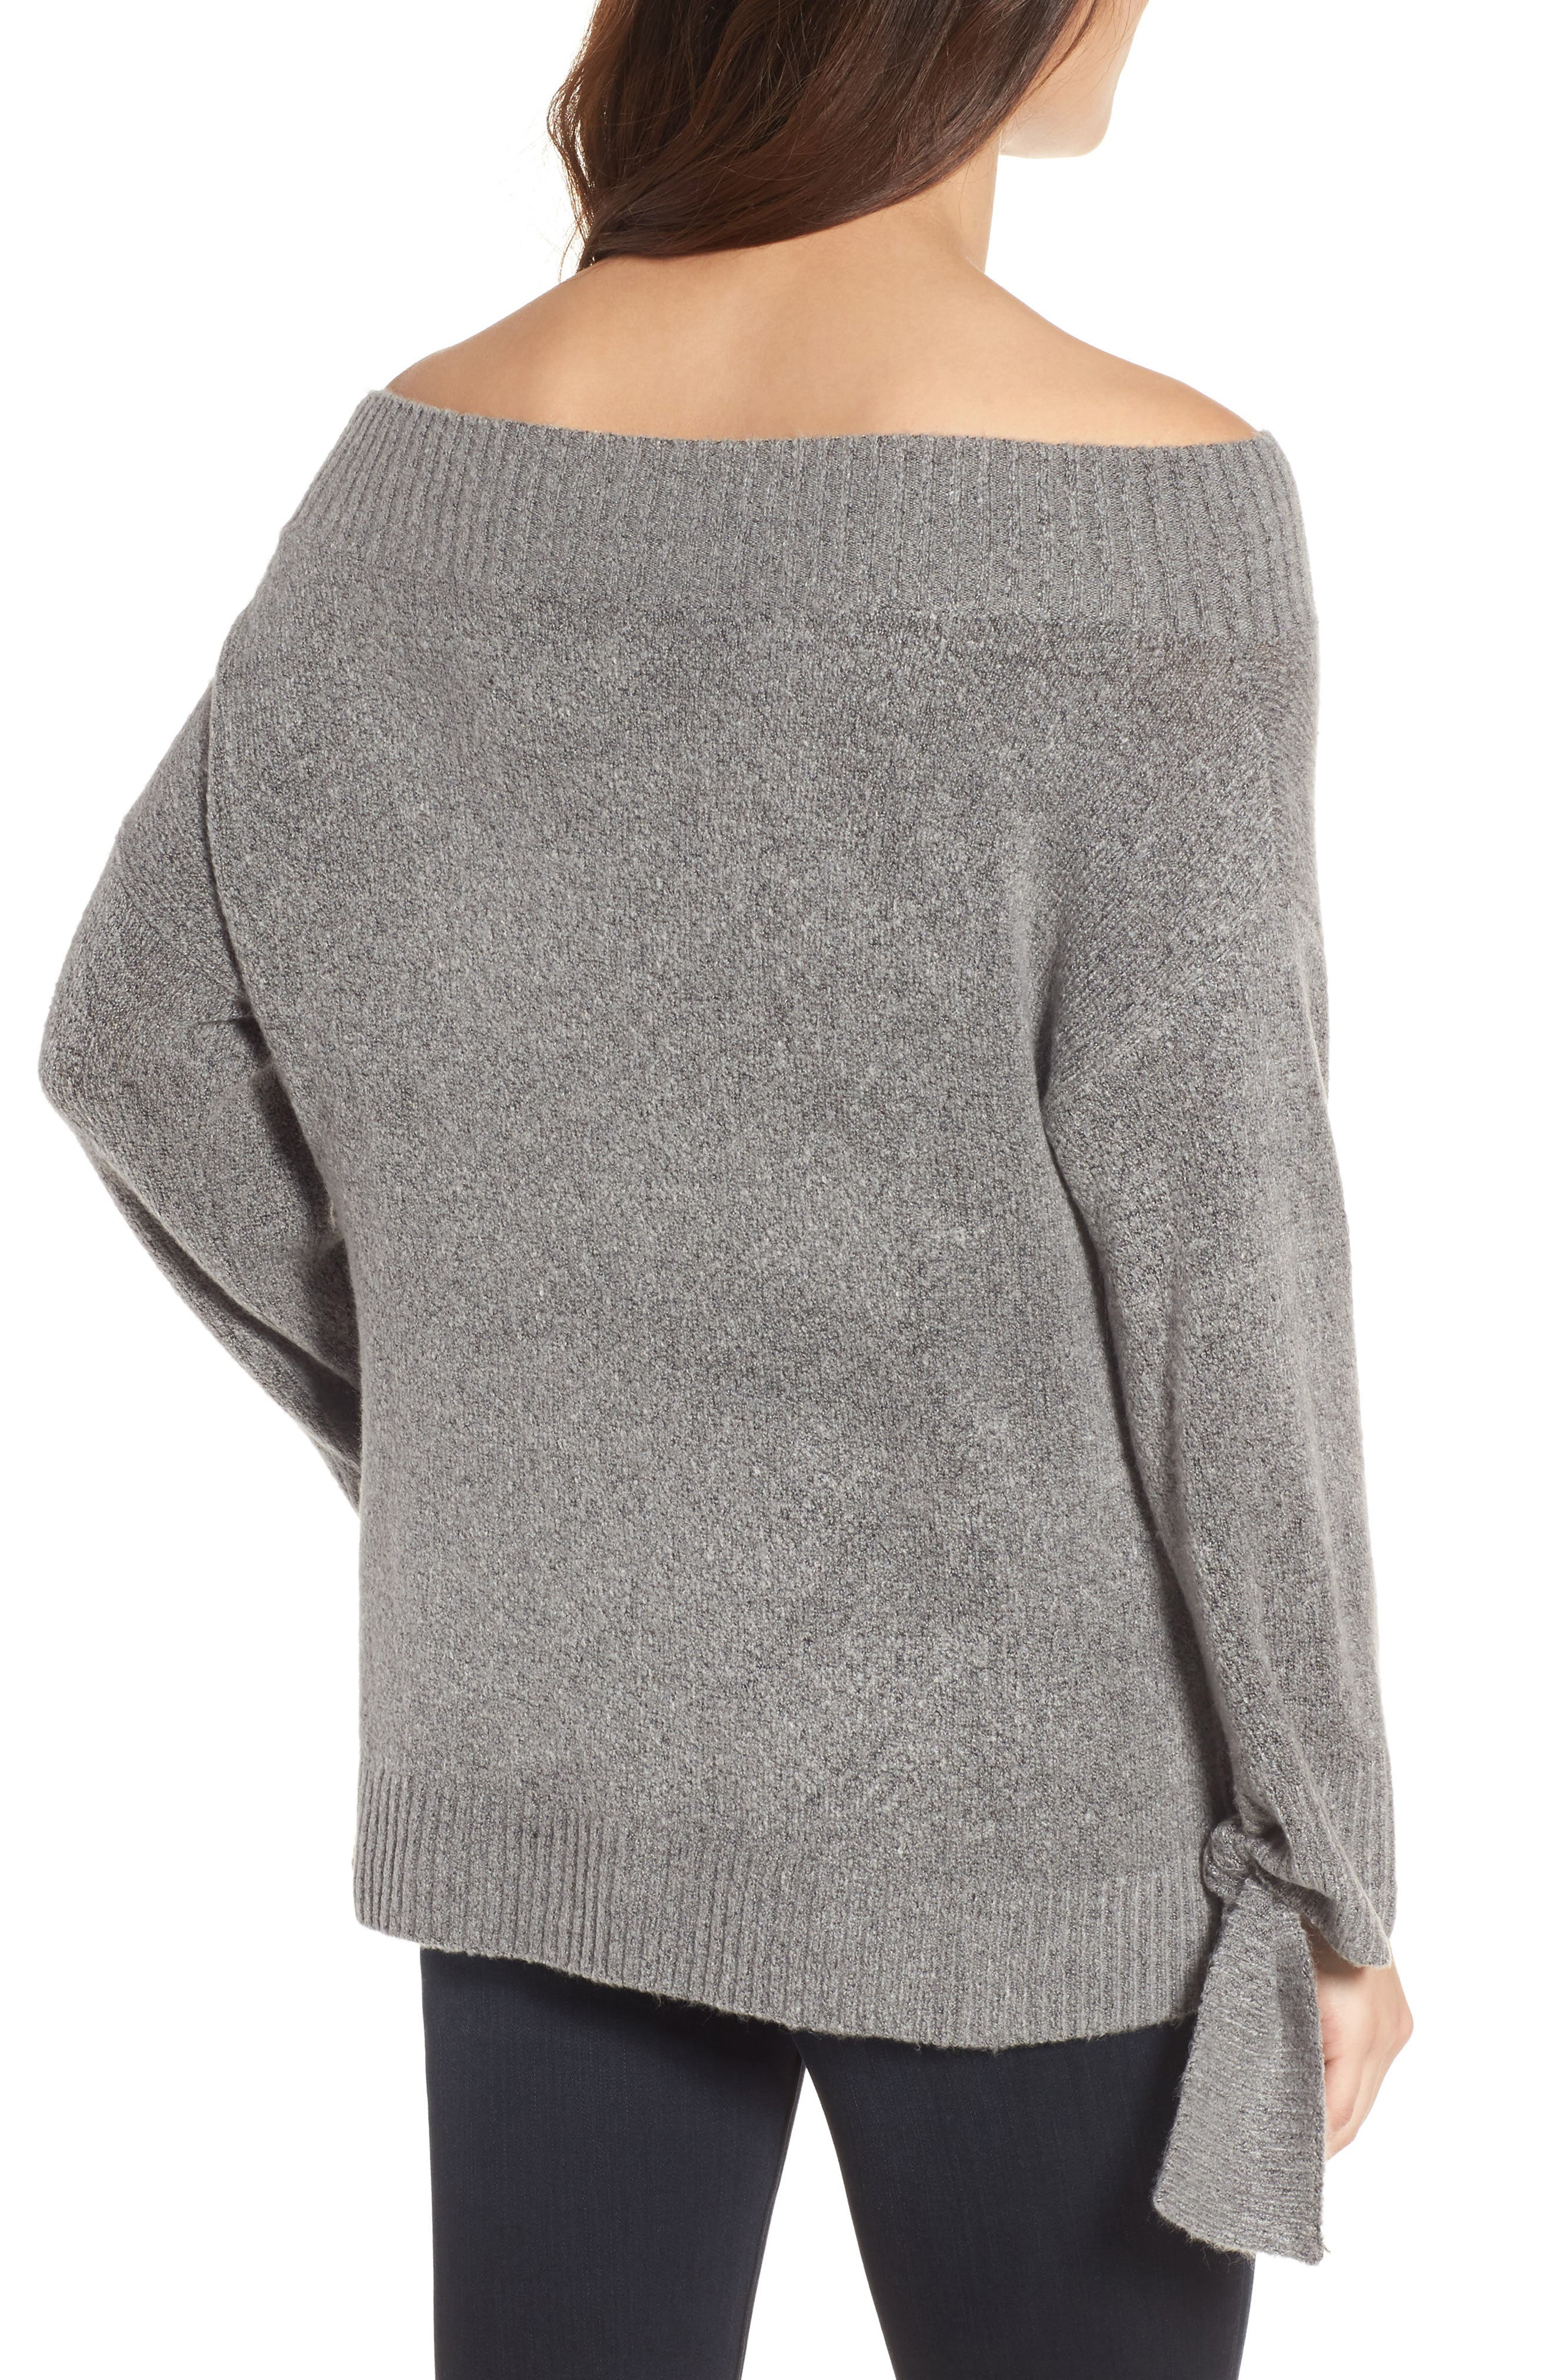 Off the Shoulder Sweater,                             Alternate thumbnail 2, color,                             Grey Heather Rainbow Multi